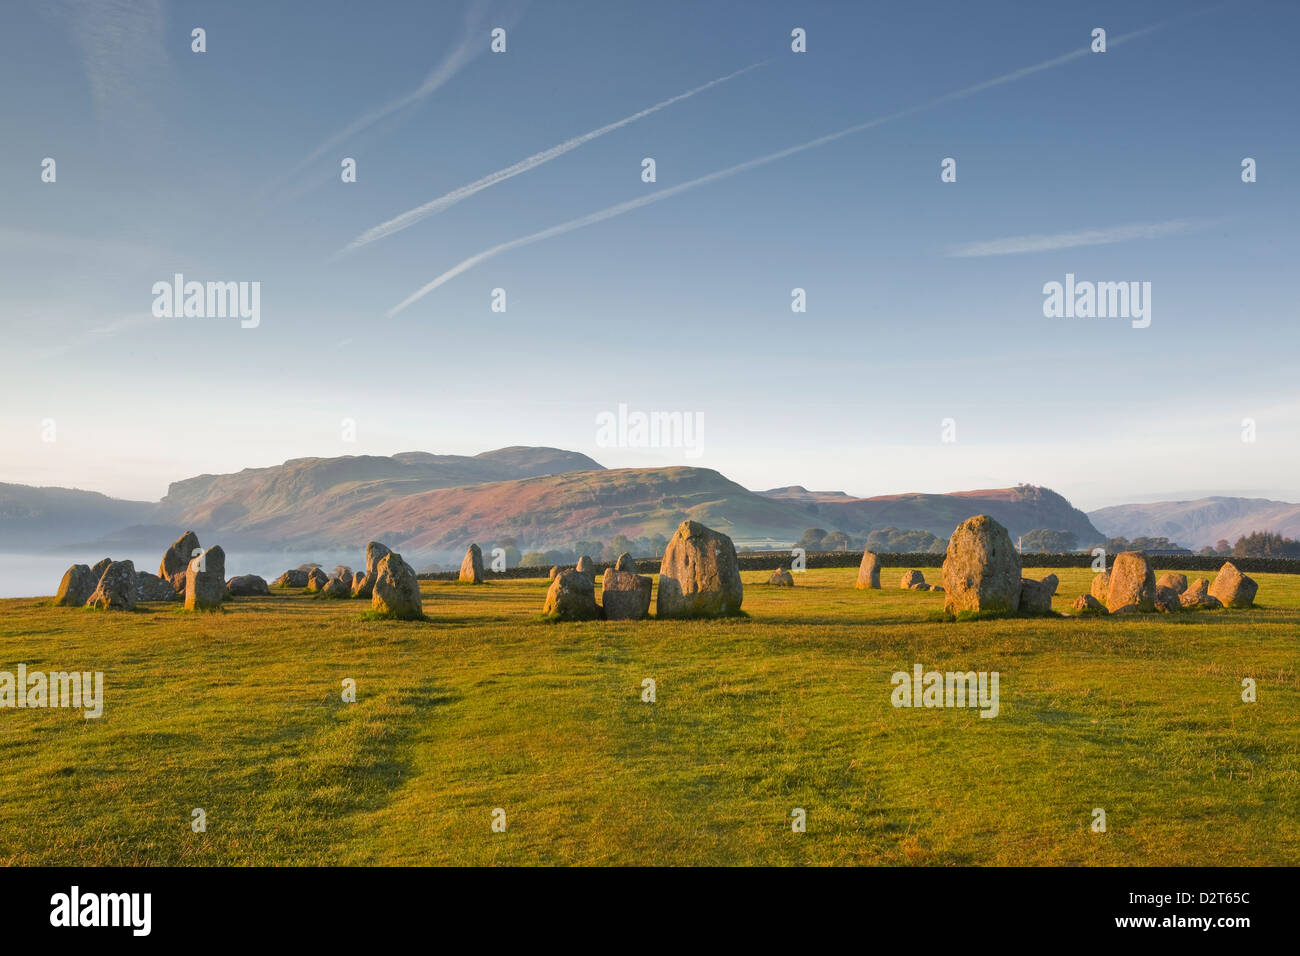 Castlerigg stone circle at dawn in the Lake District National Park, Cumbria, England, United Kingdom, Europe - Stock Image